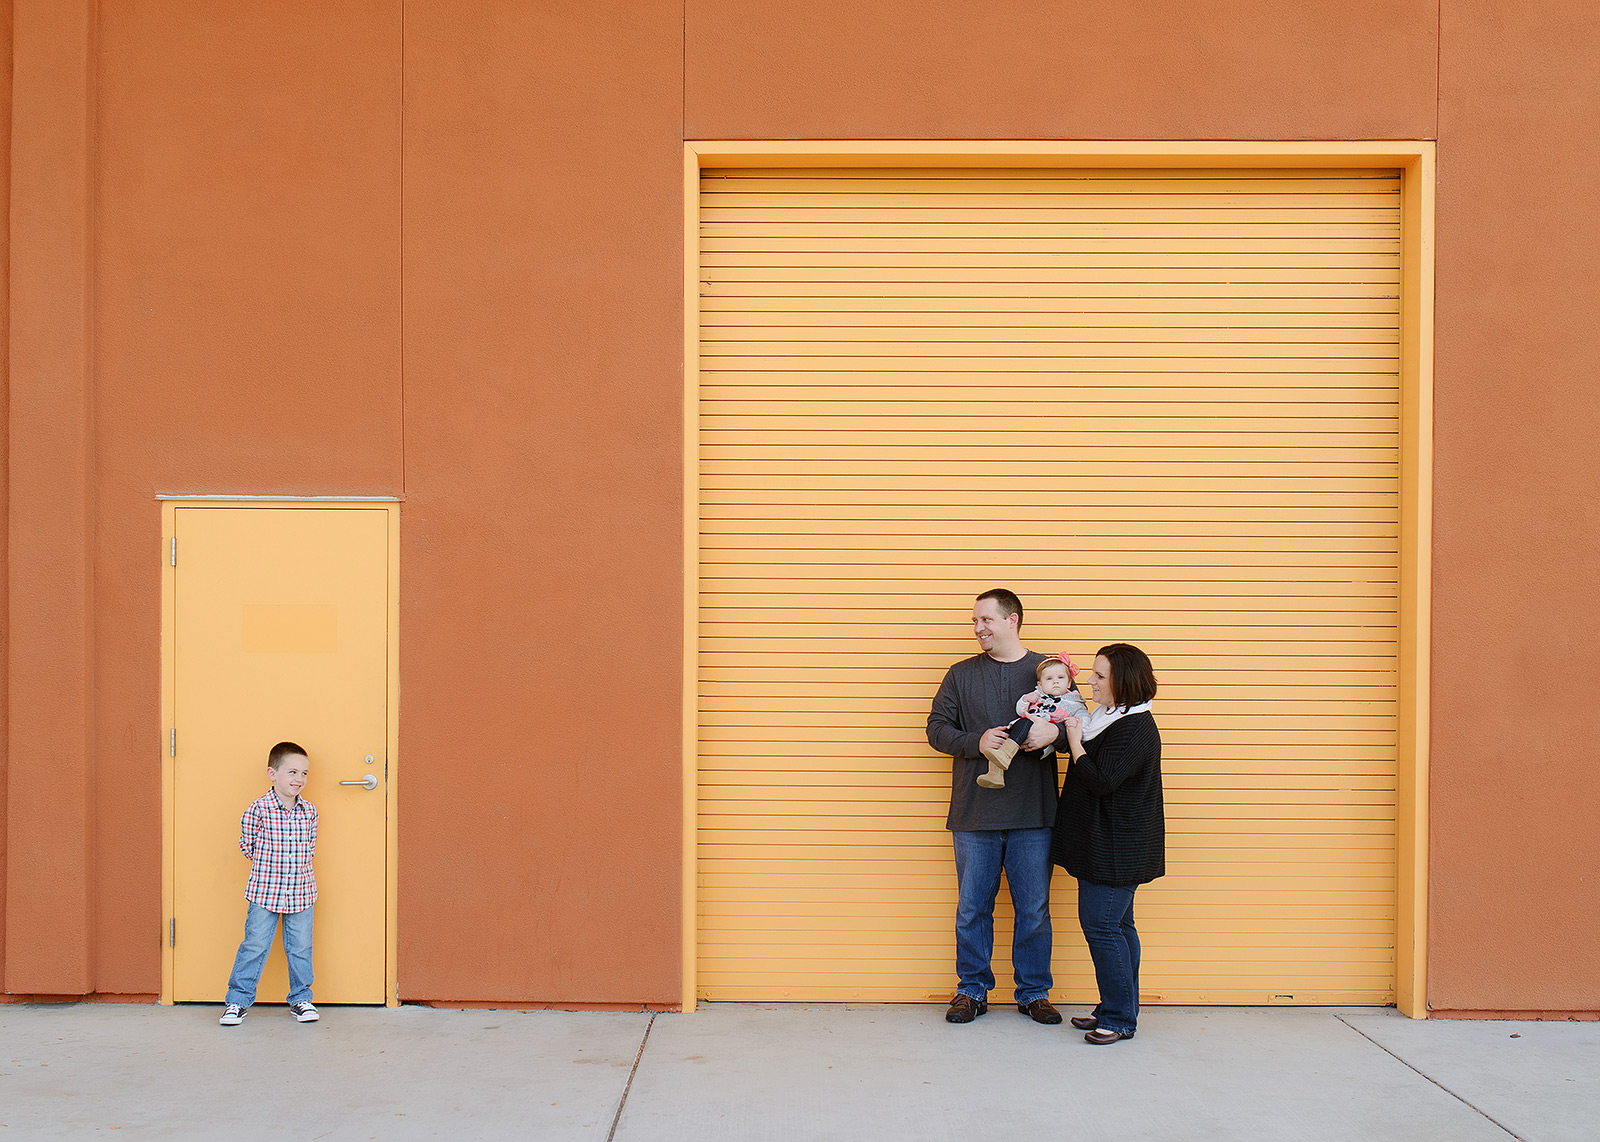 Family Photo Against Modern Industrial Orange Building in Rocklin